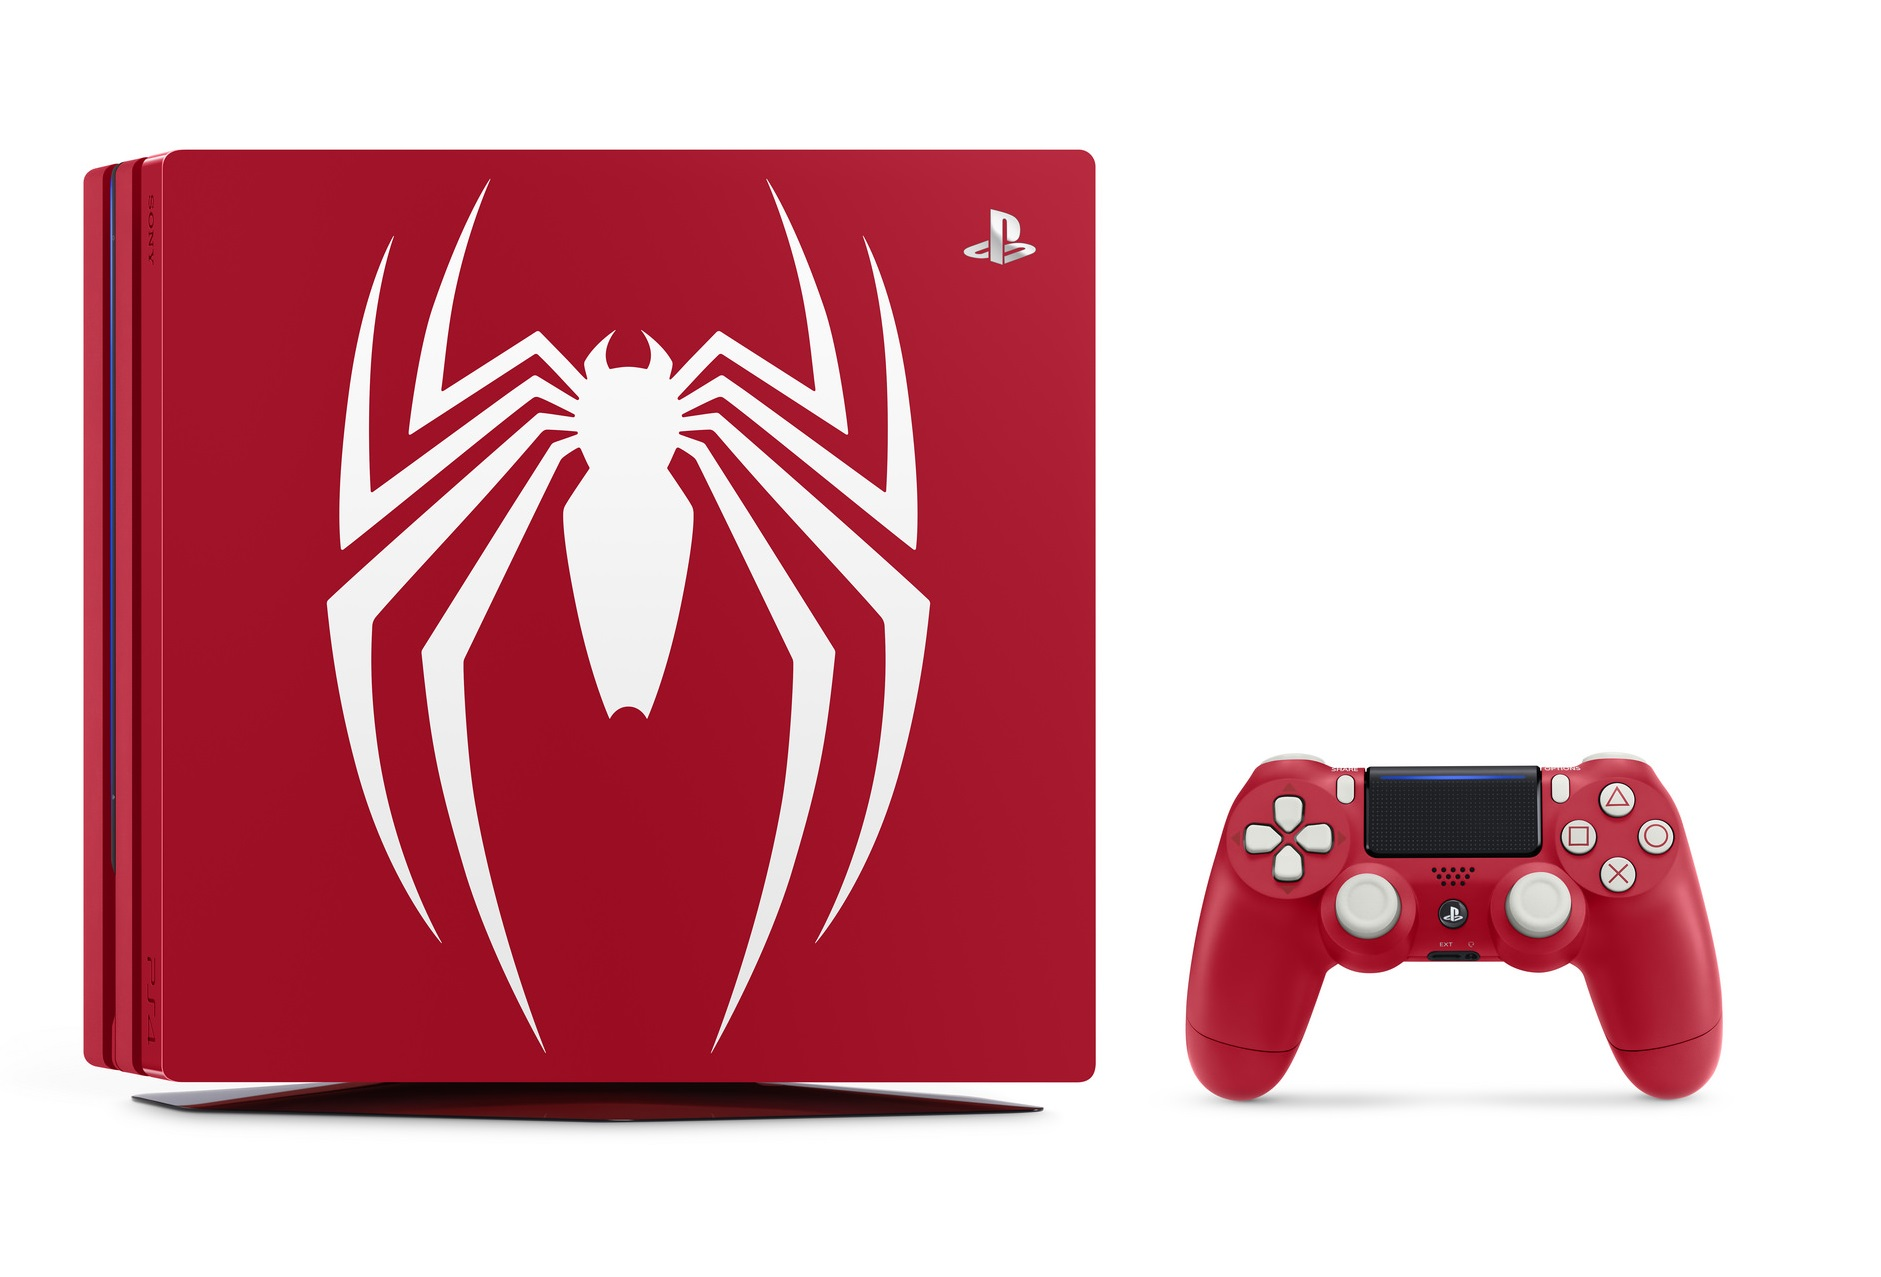 Spider-man Limited Edition Ps4 Pro 1tb Console Good Condition box Only Moderate Price